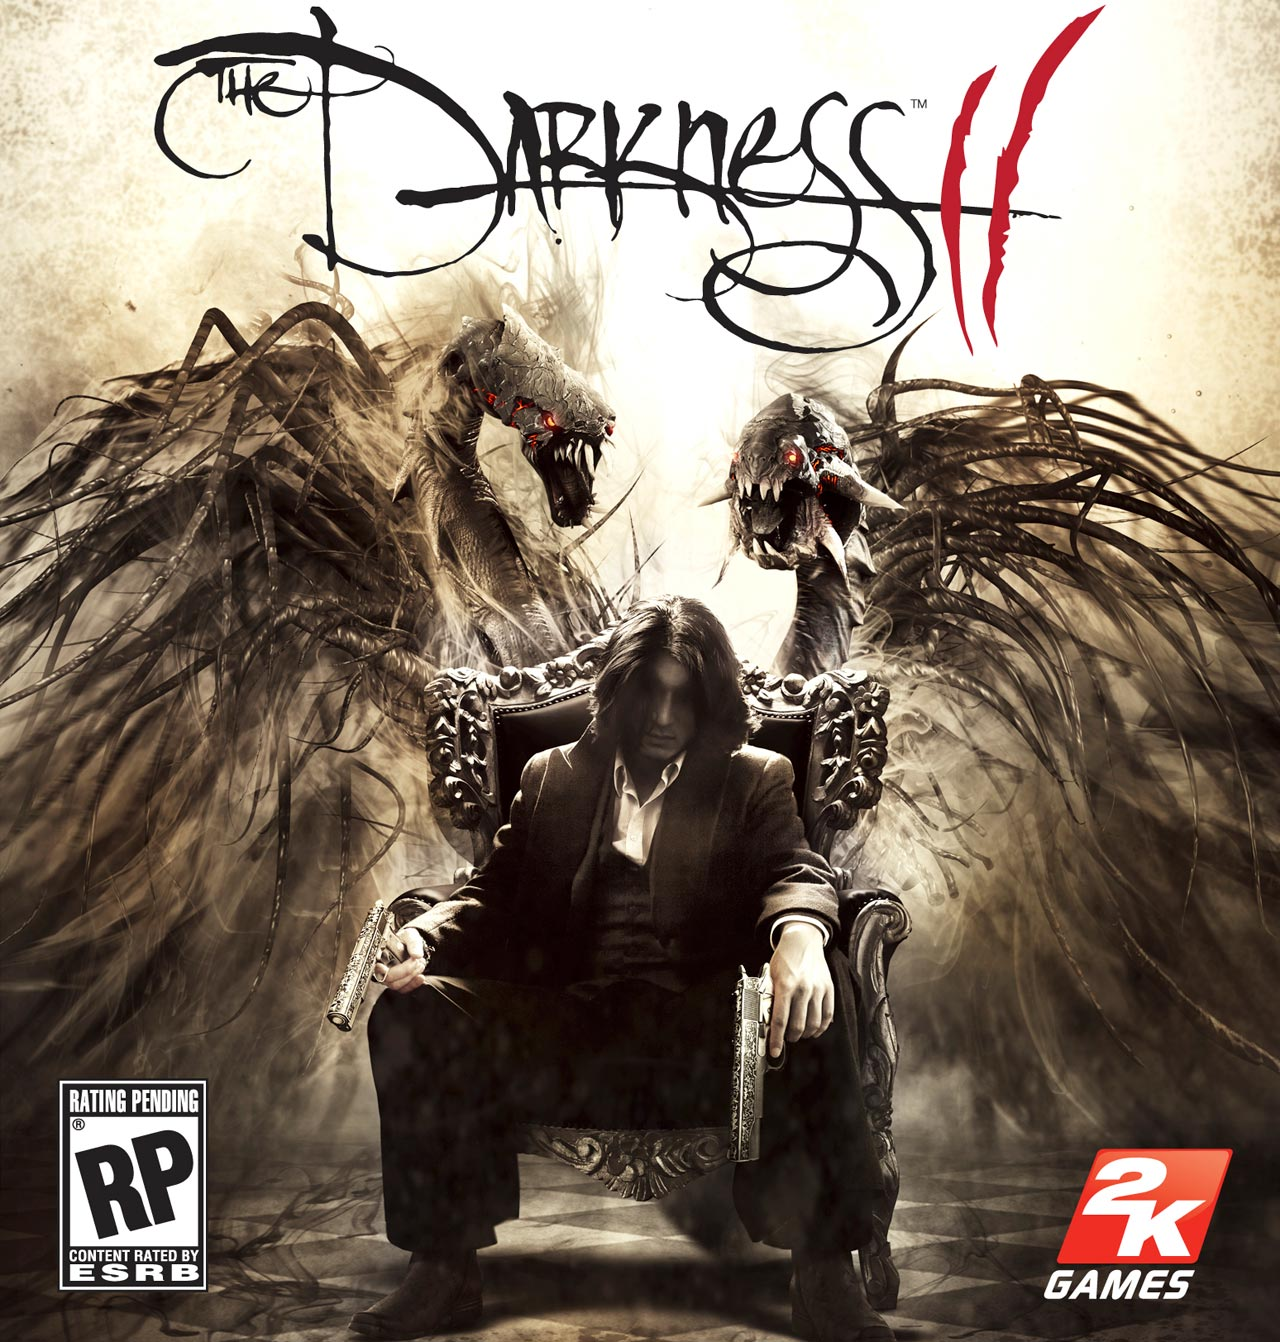 the-darkness-2-box-art